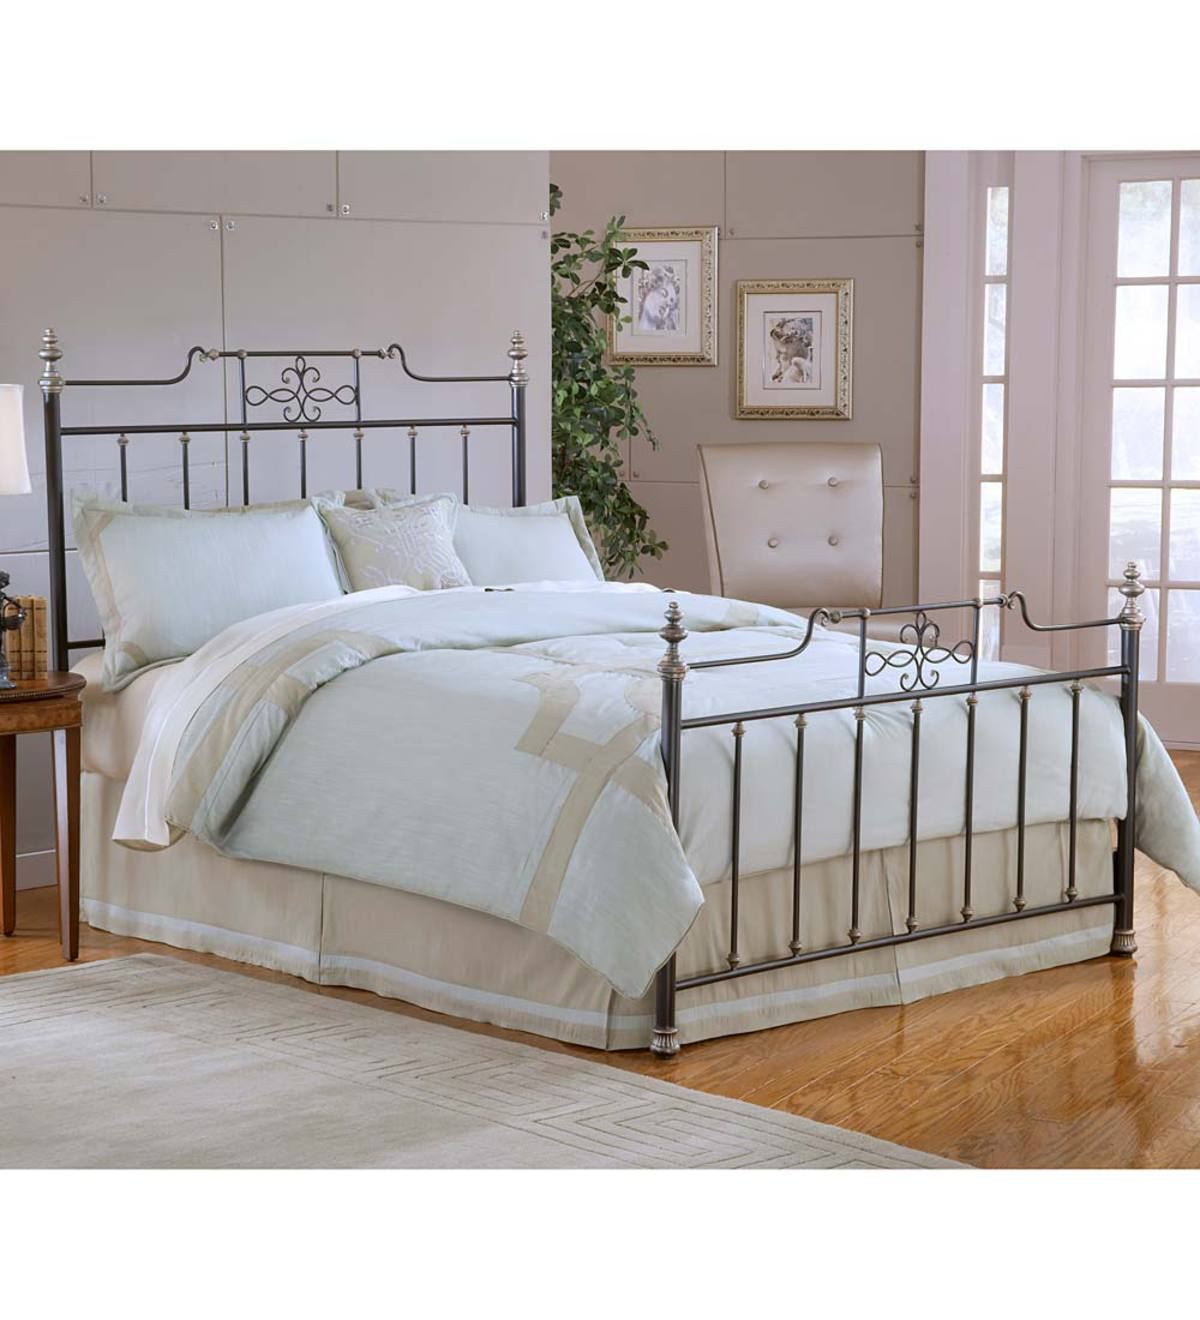 Abigale Metal Queen Bed Set